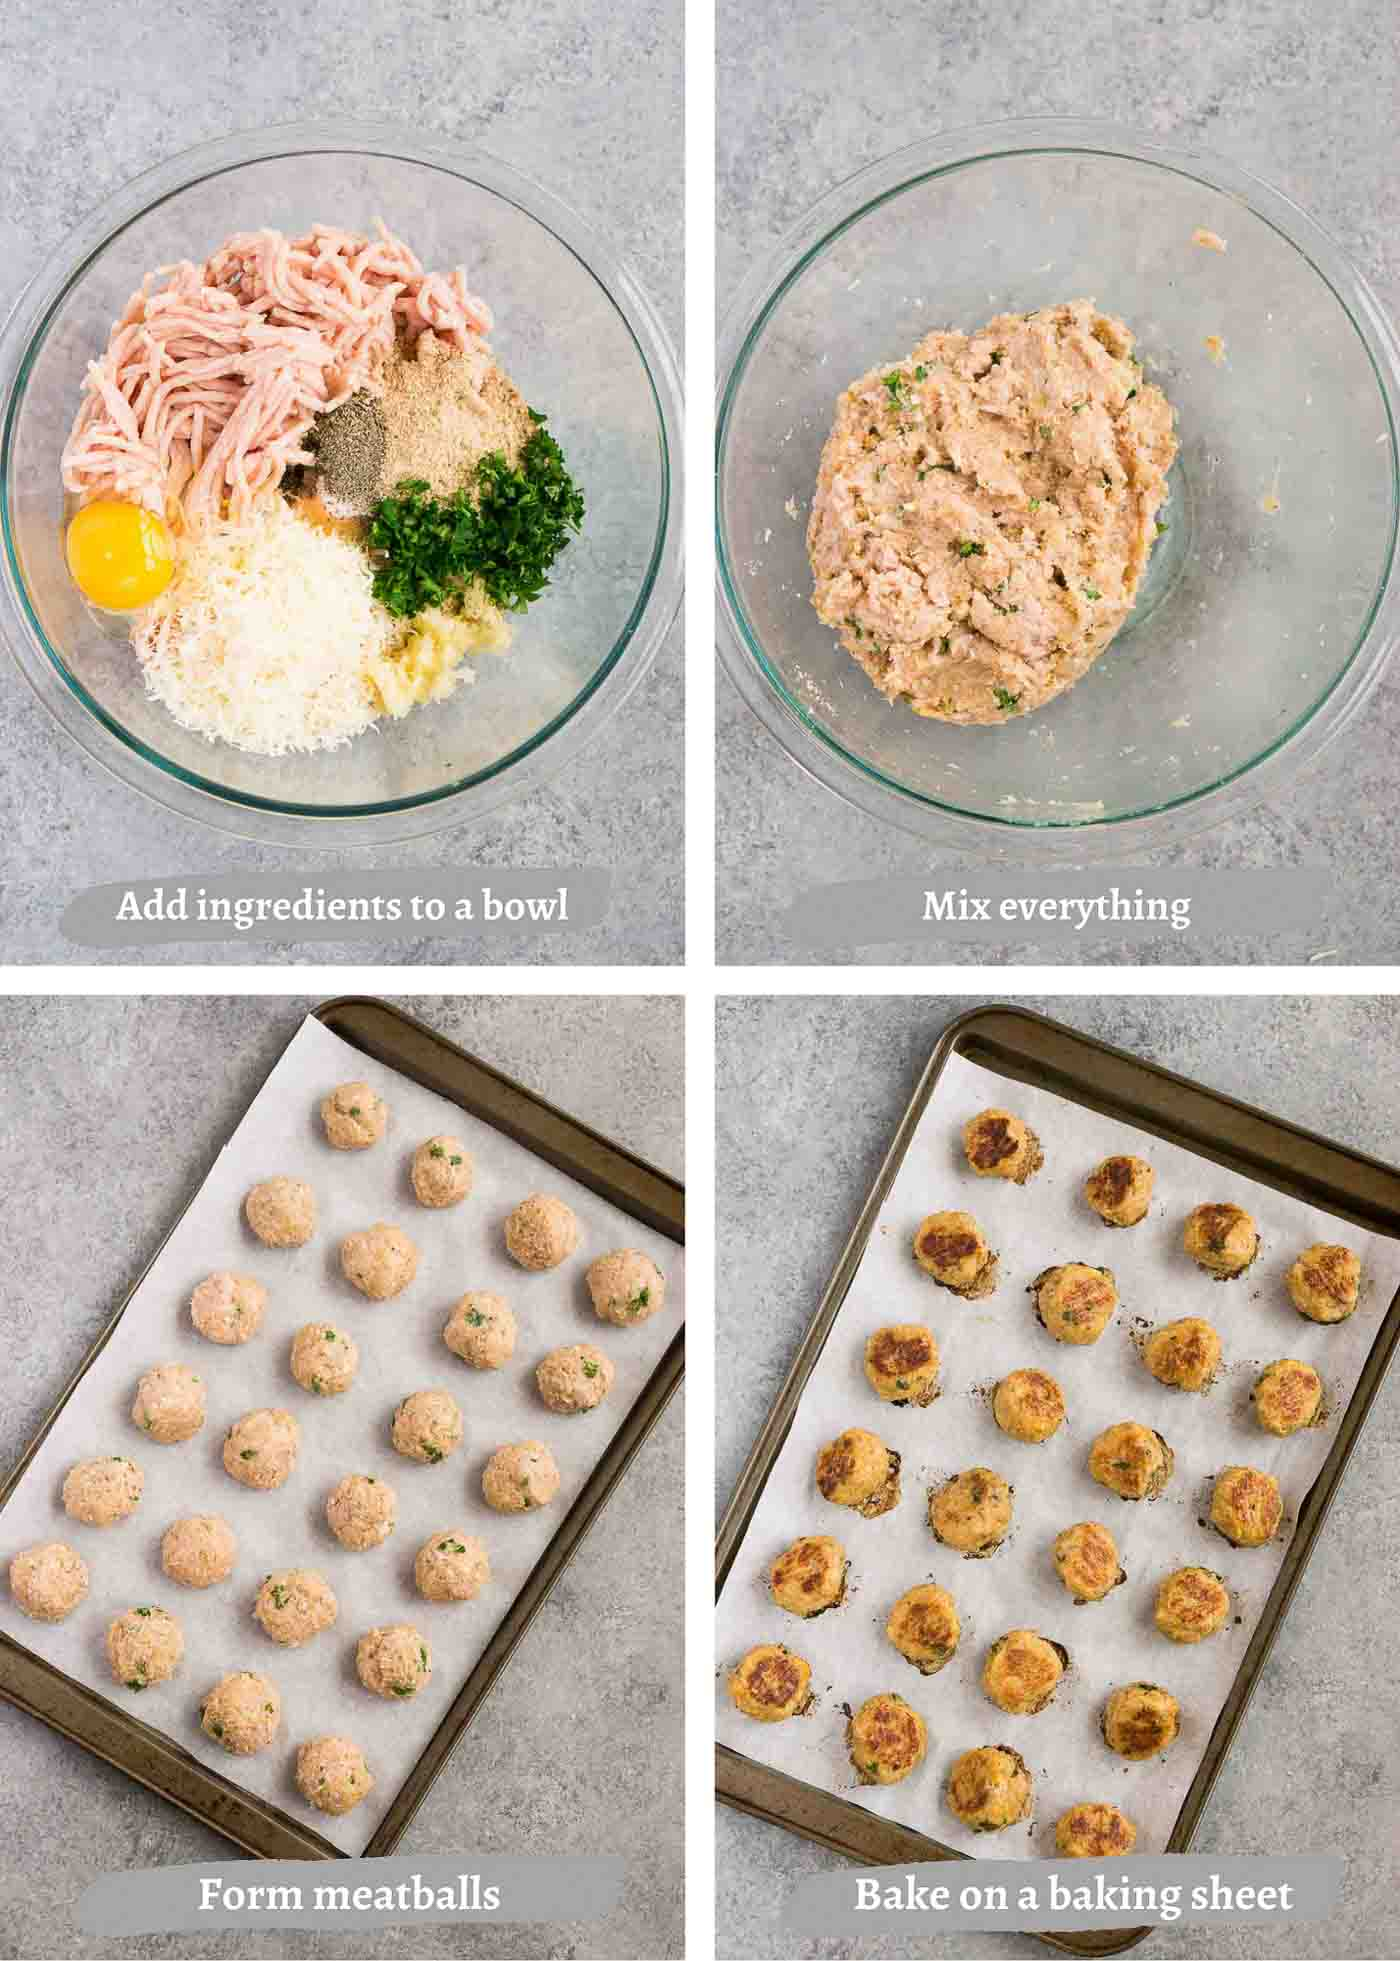 process images of how to bake chicken meatballs in the oven